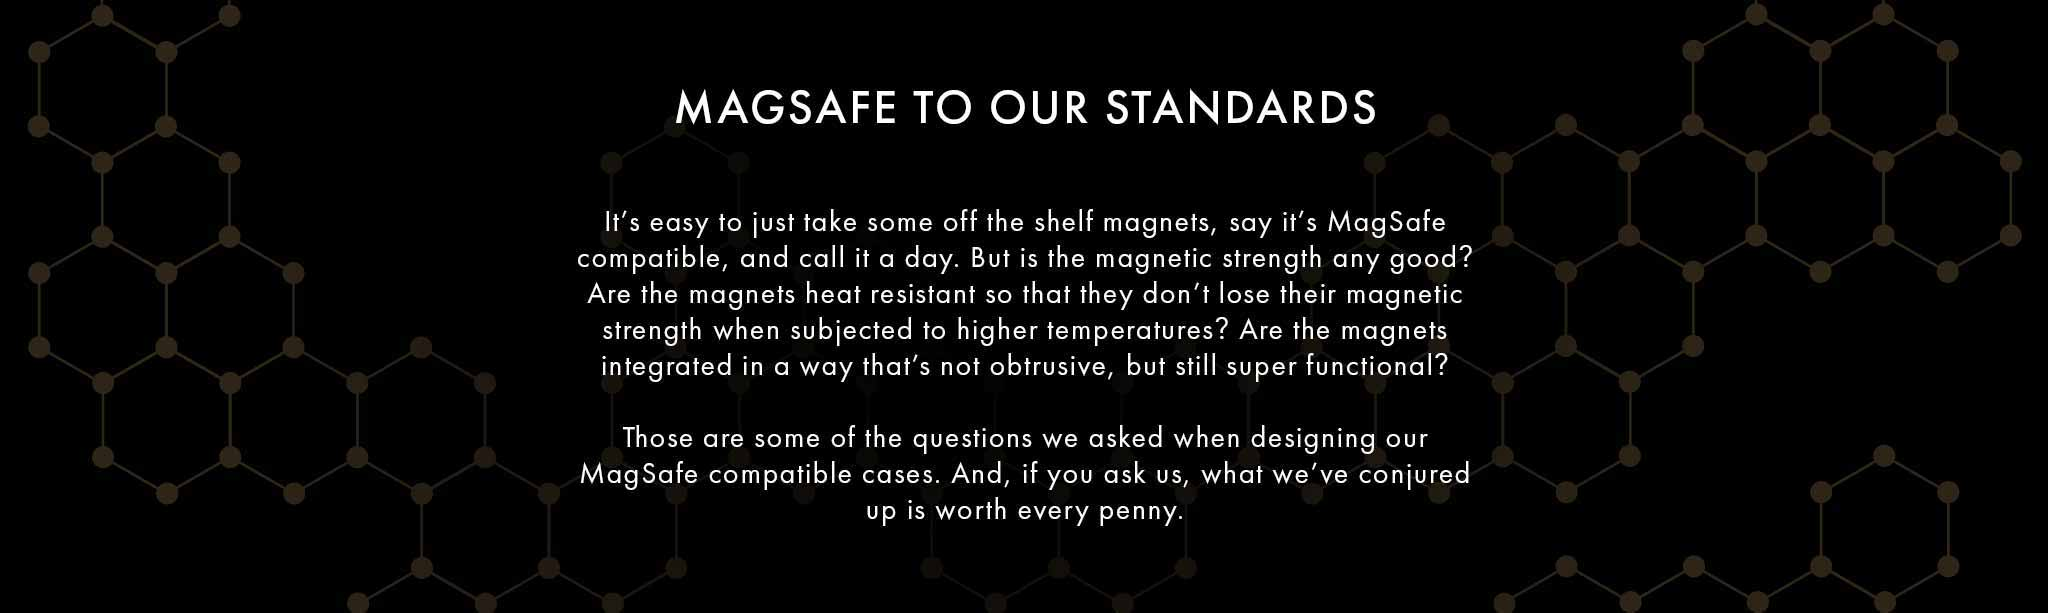 MagSafe to Our Standards